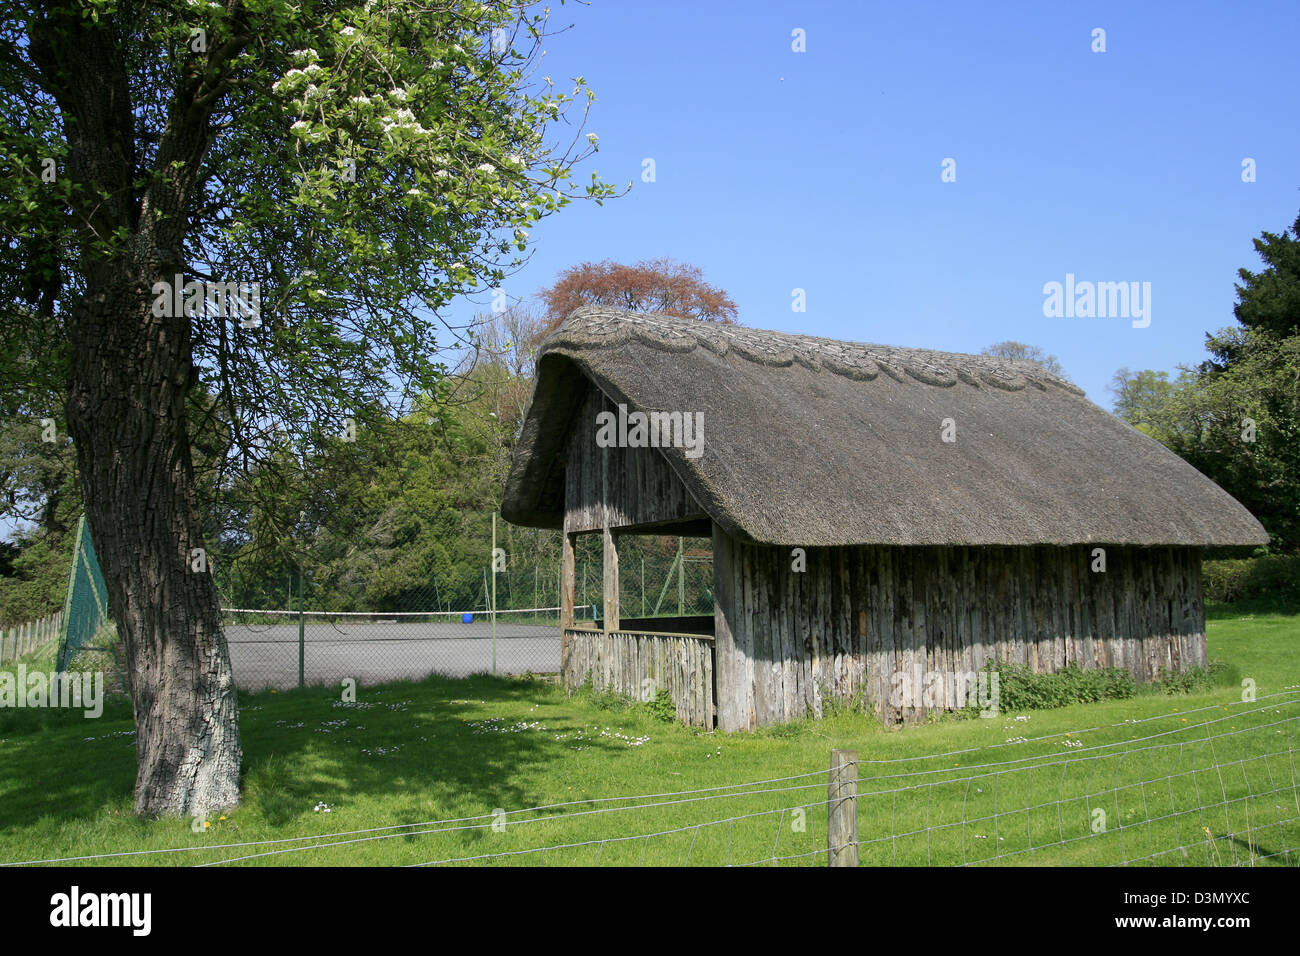 Thatched tennis pavilion Stanway Gloucestershire England UK Stock Photo